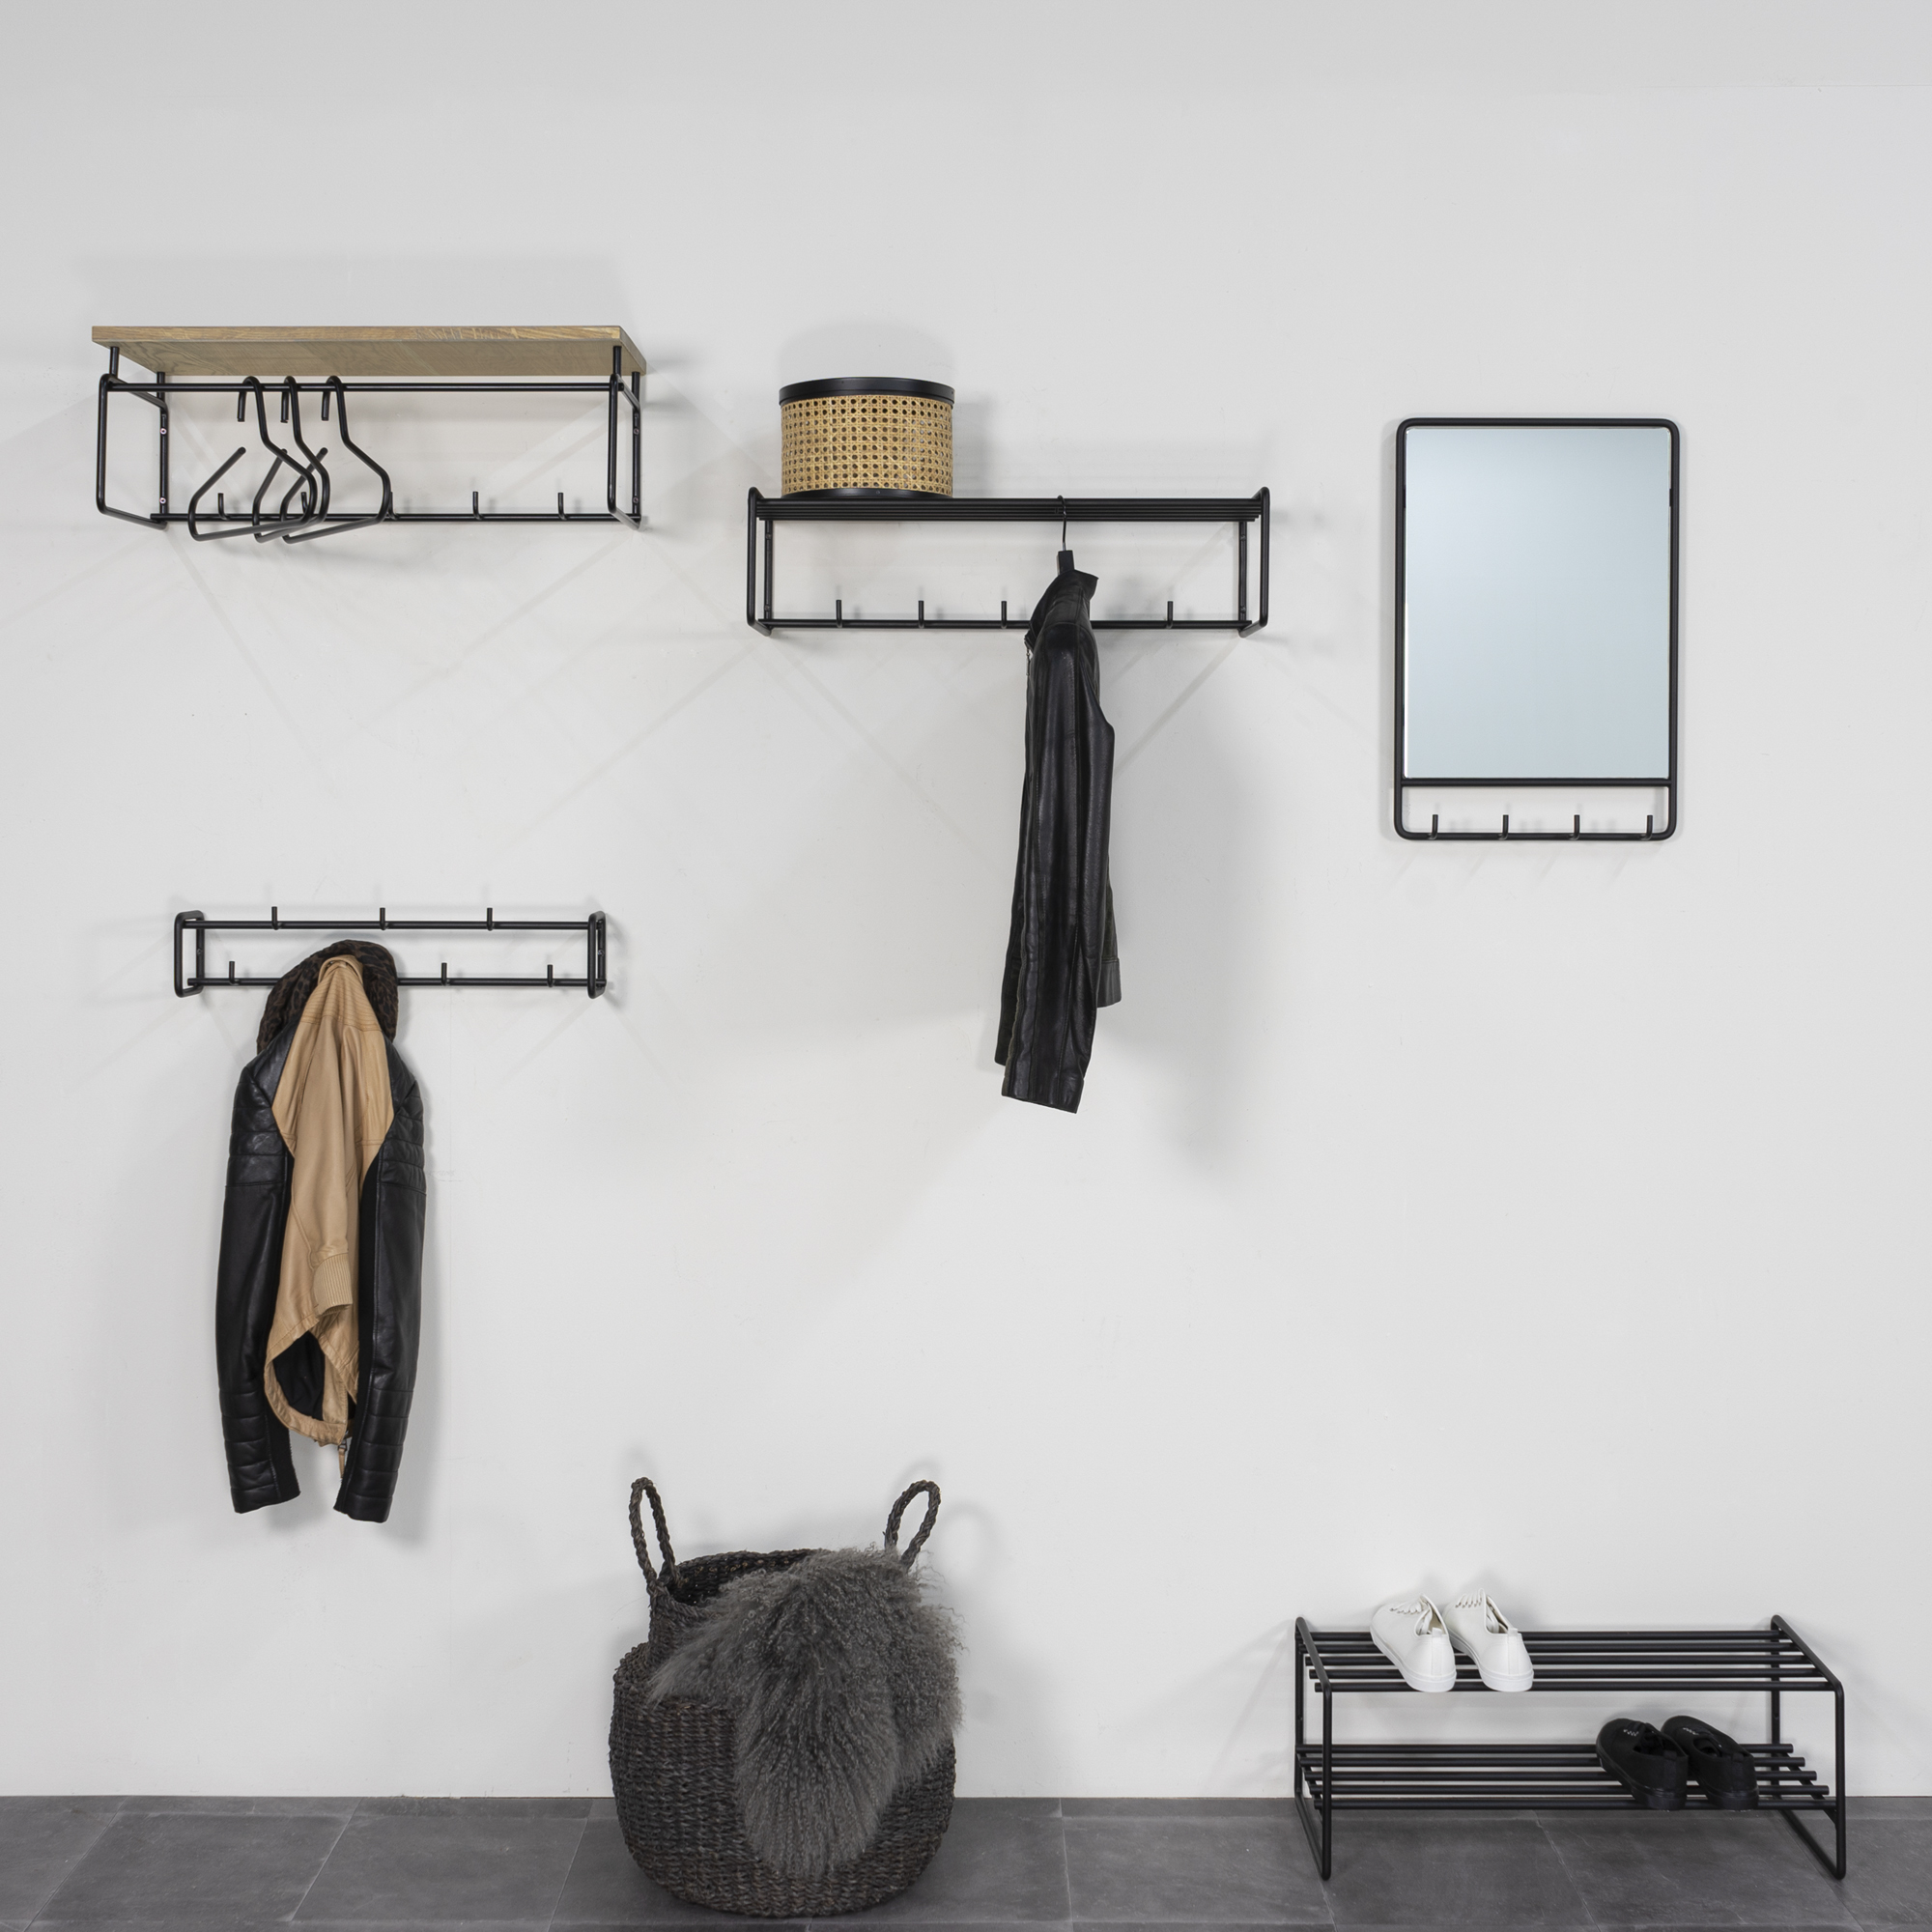 Selection guide: which coat rack to choose?